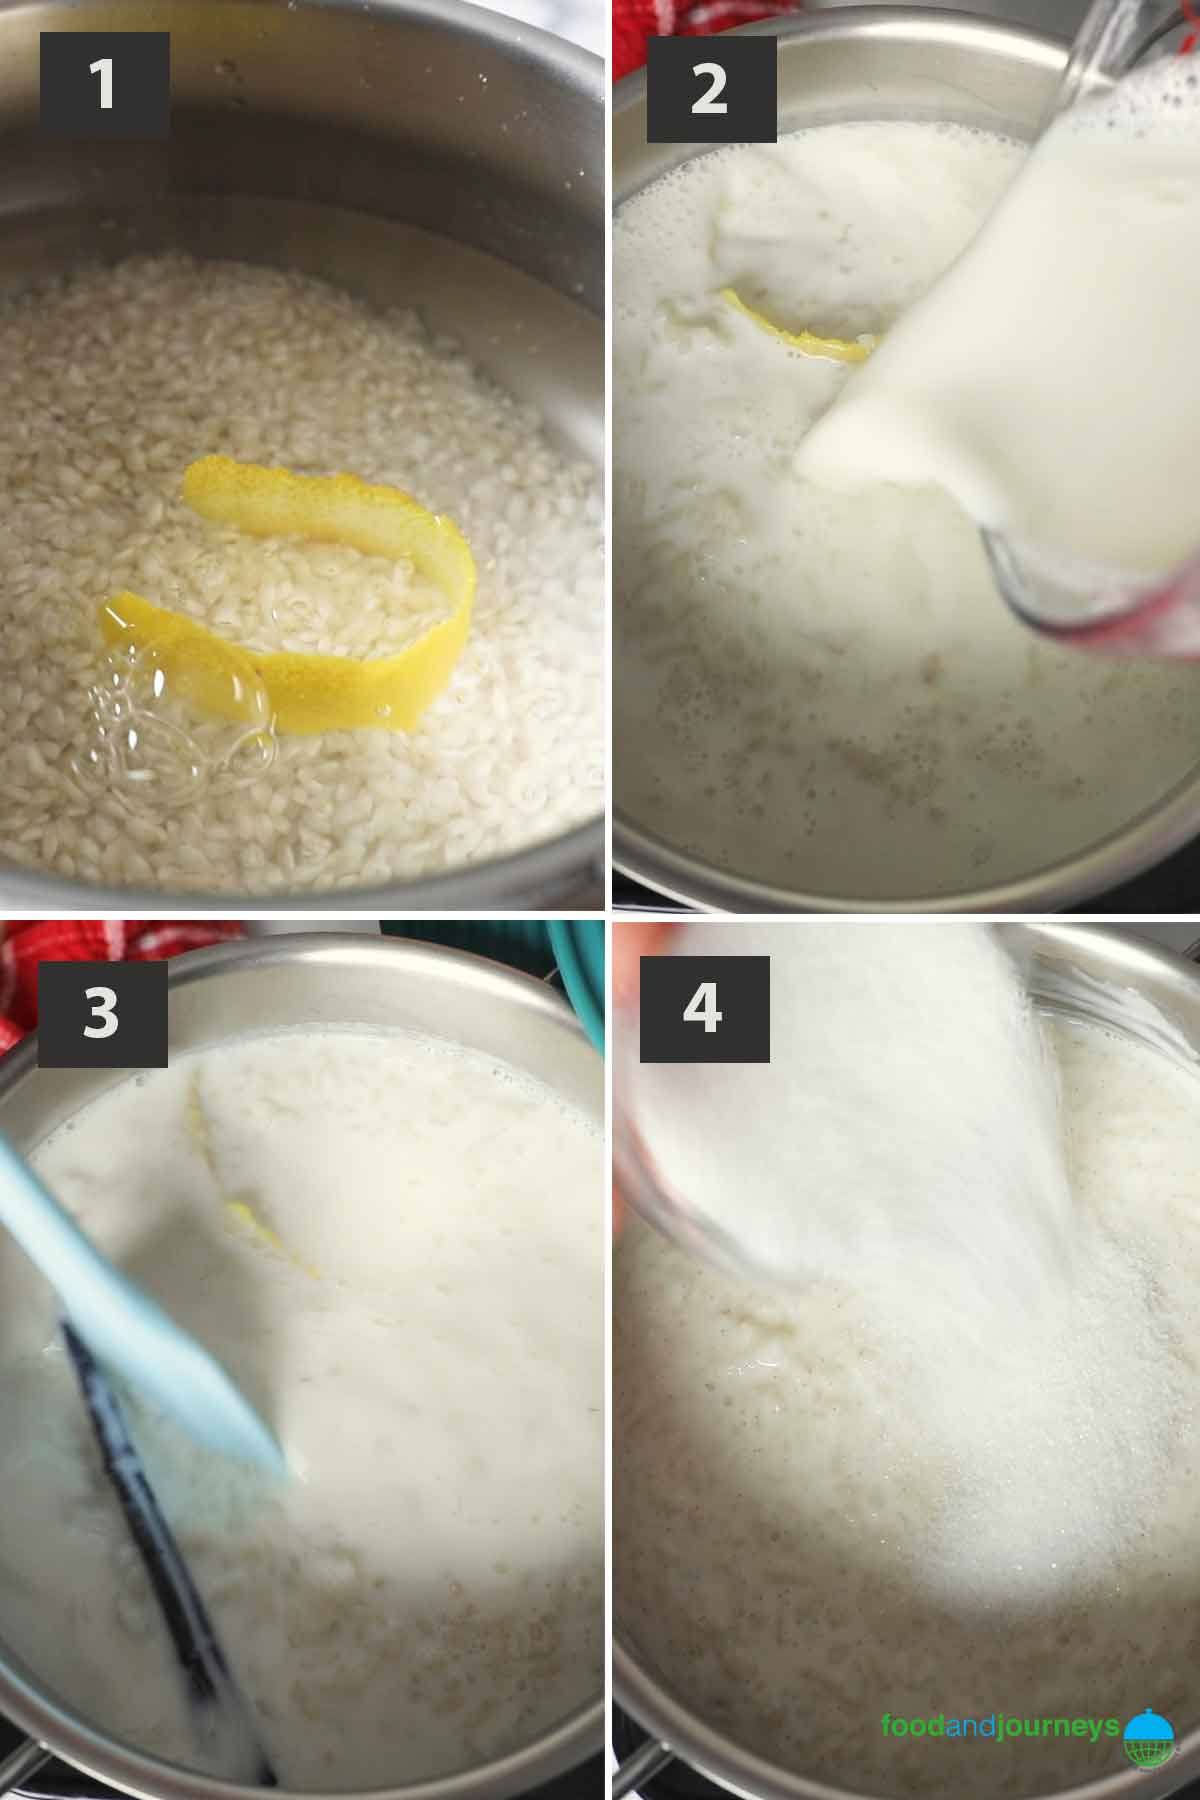 First part of a collage of images showing the step by step process on how to make Portuguese Rice Pudding.